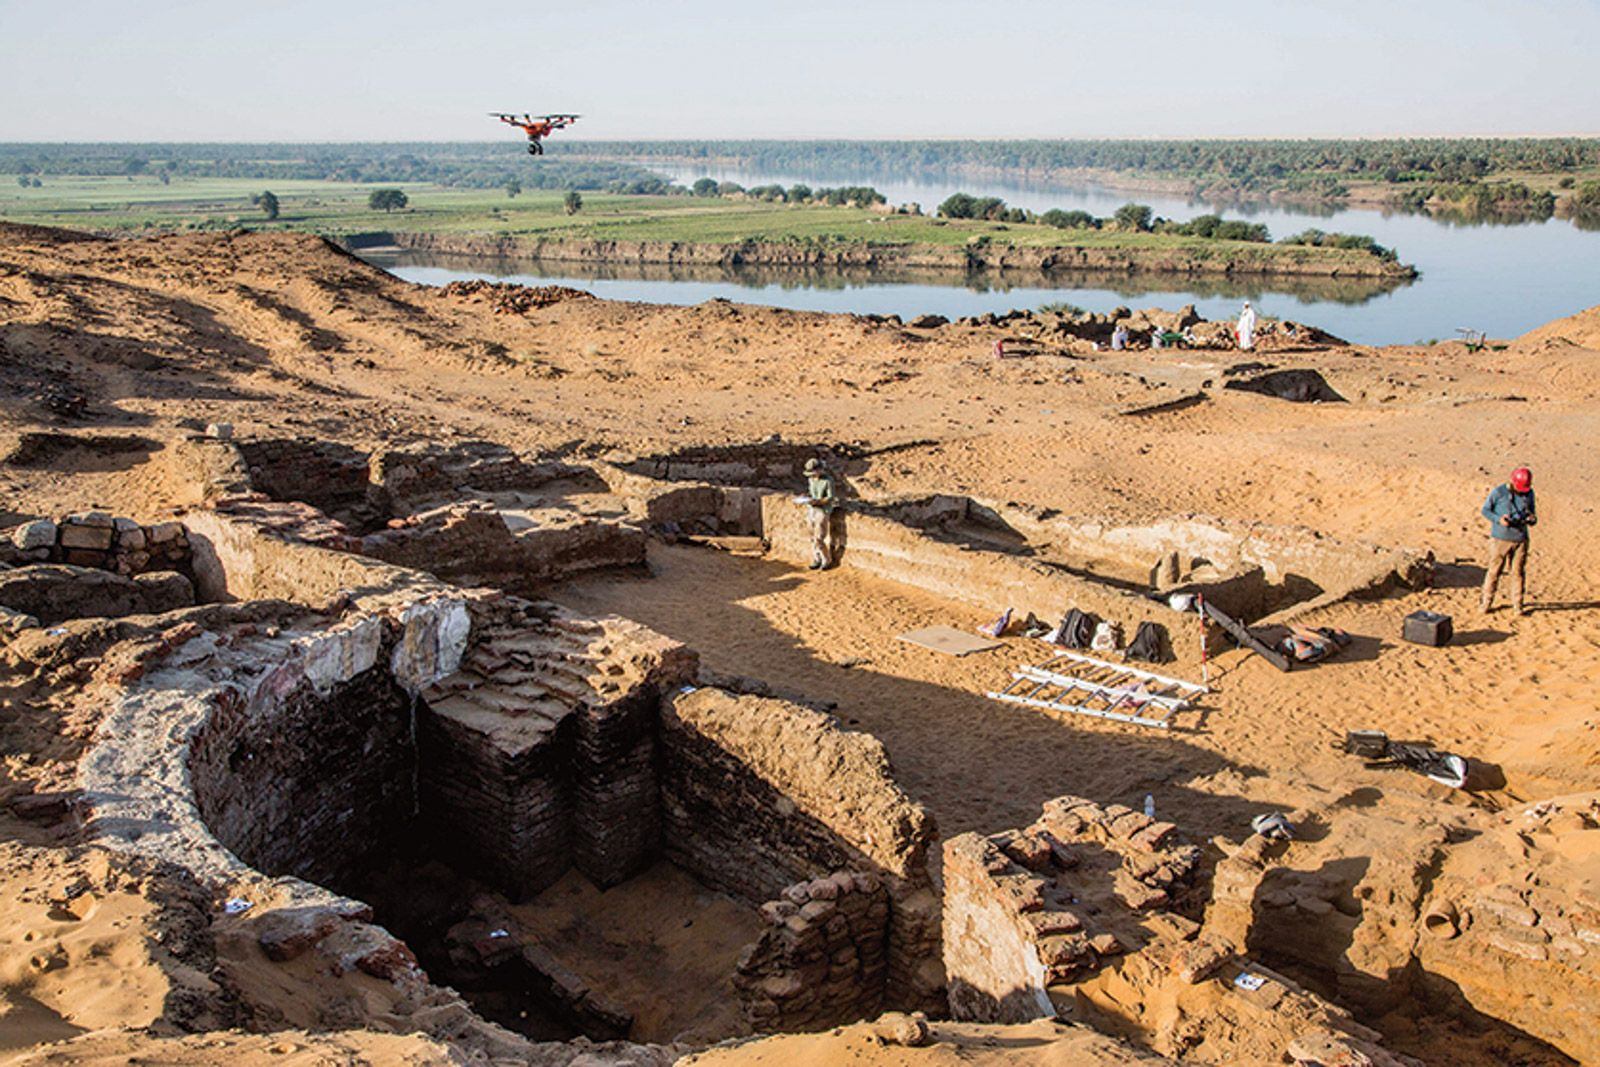 Excavations in Old Dongola revealed two walls of a 6m-wide apse as well as the dome of a large tomb